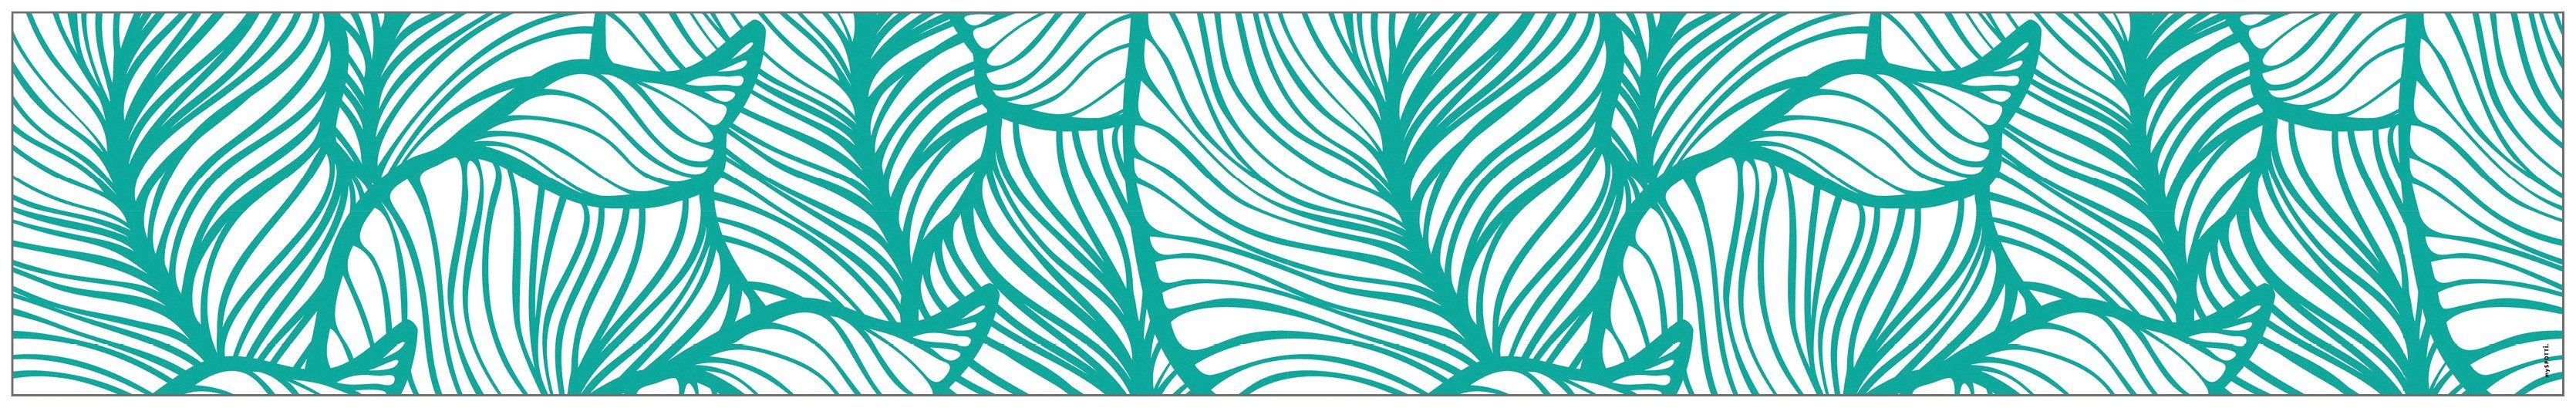 MYSPOTTI Fensterfolie »mySPOTTI look Leaves turquoise«, 200 x 30 cm, statisch haftend